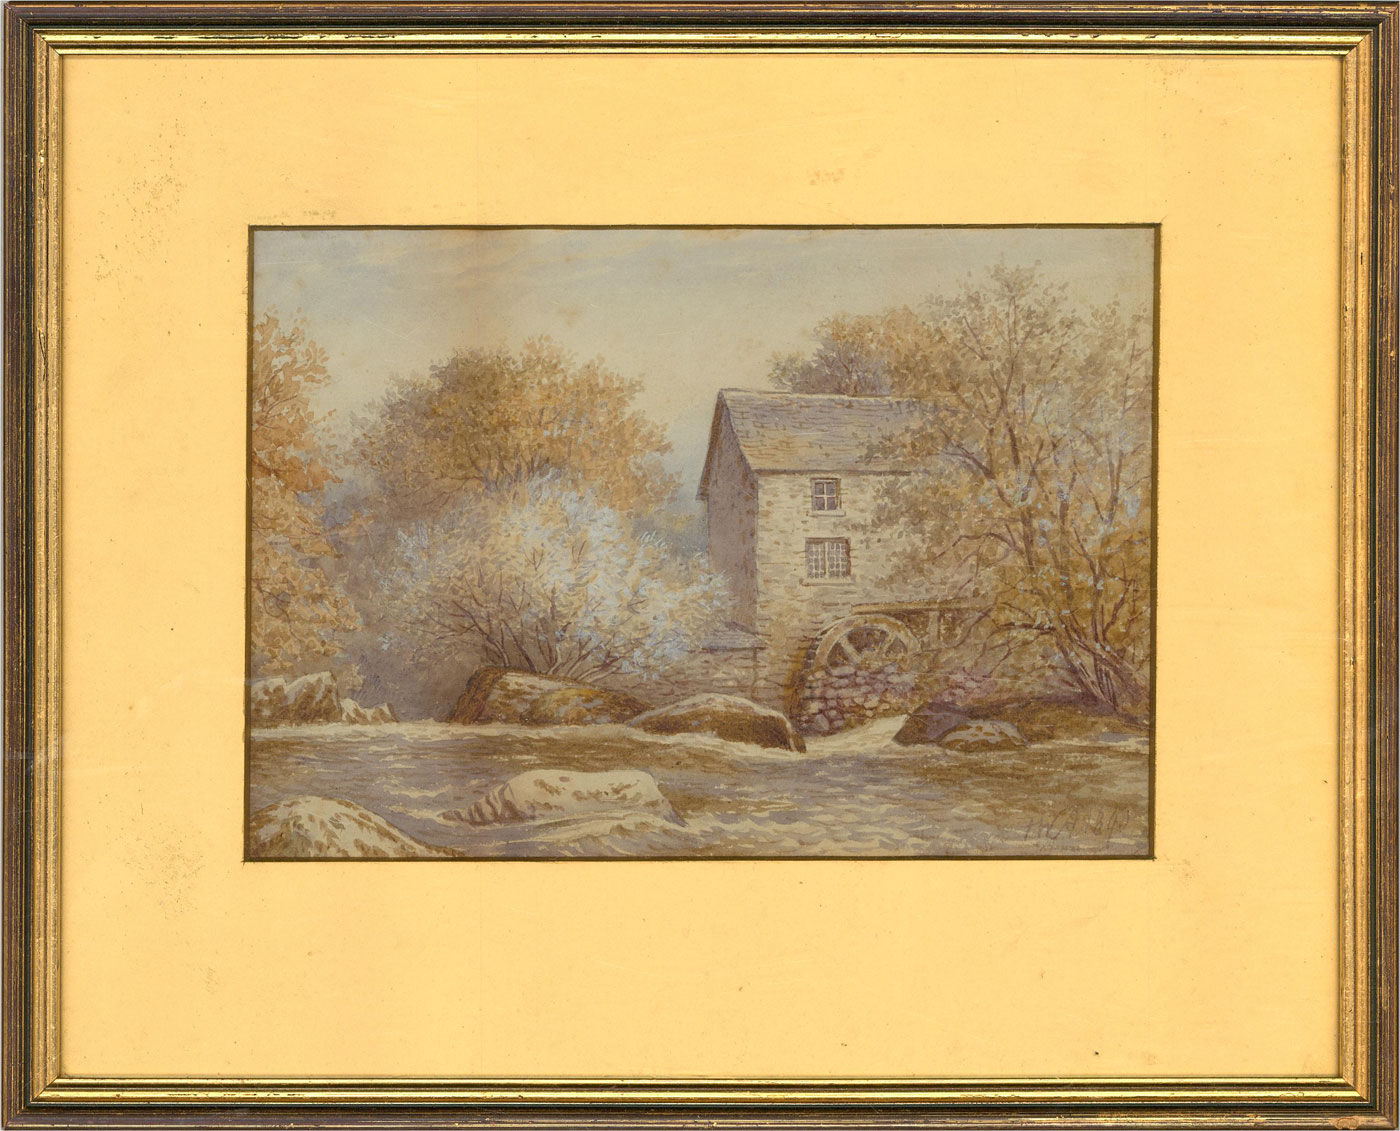 F.W. Archer - 1890 Watercolour, Landscape View with Watermill